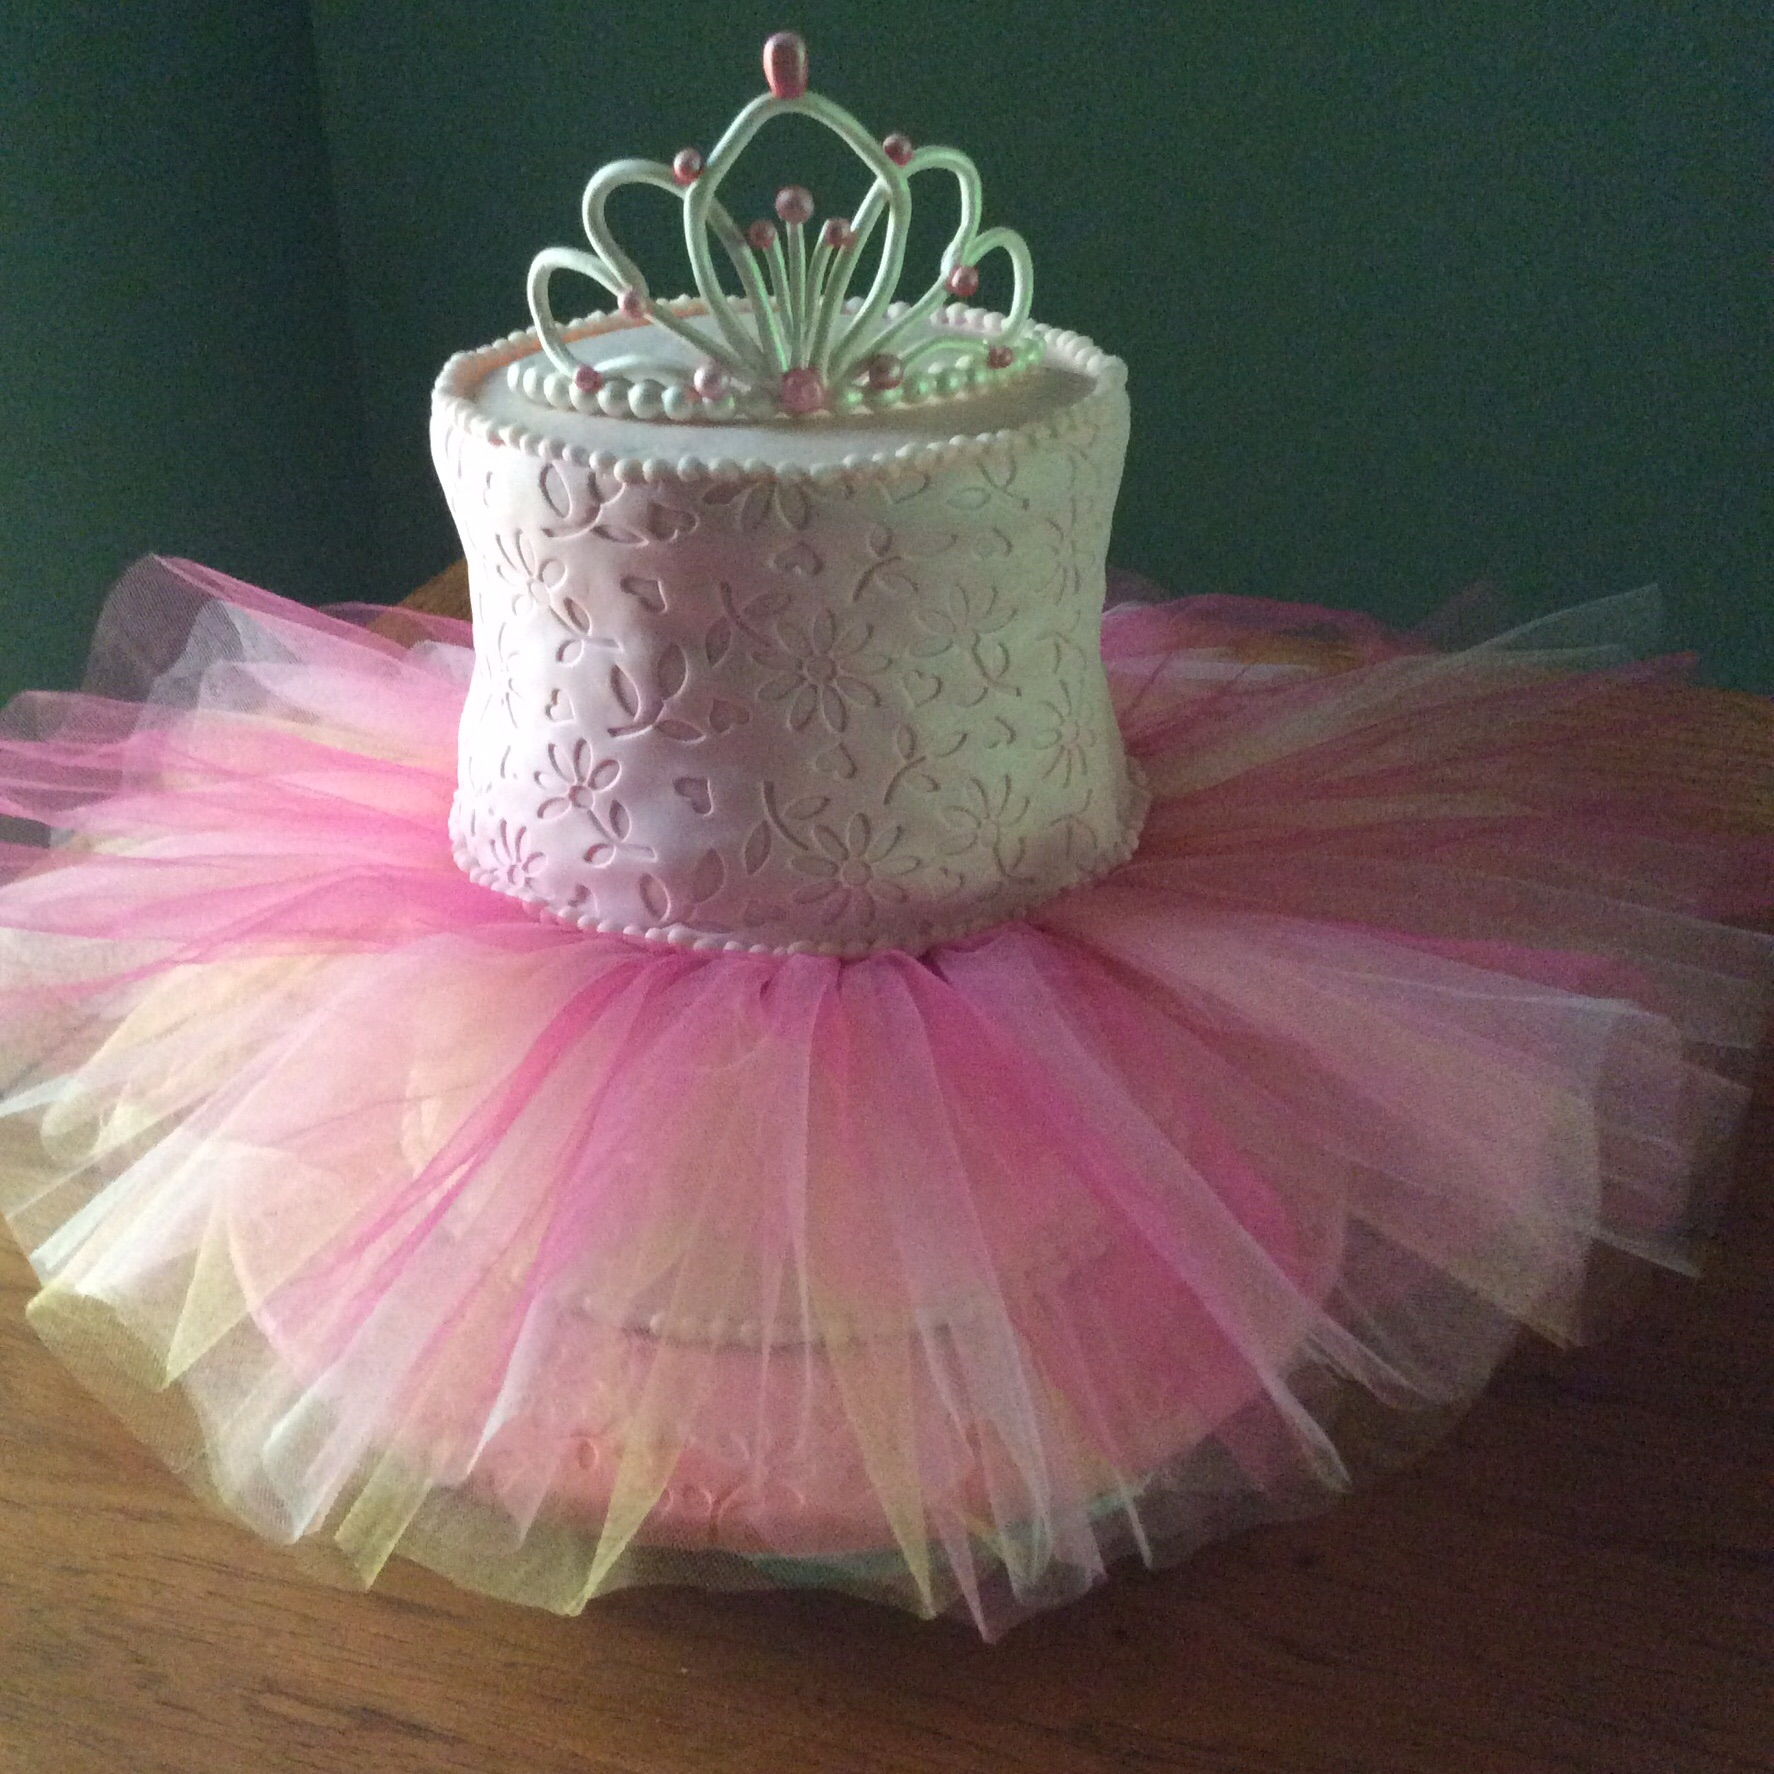 Baby Ballerina   Buttercream cake covered with a tutu. Top tier covered in embossed fondant. Gumpaste tiara spray painted with edible paint.